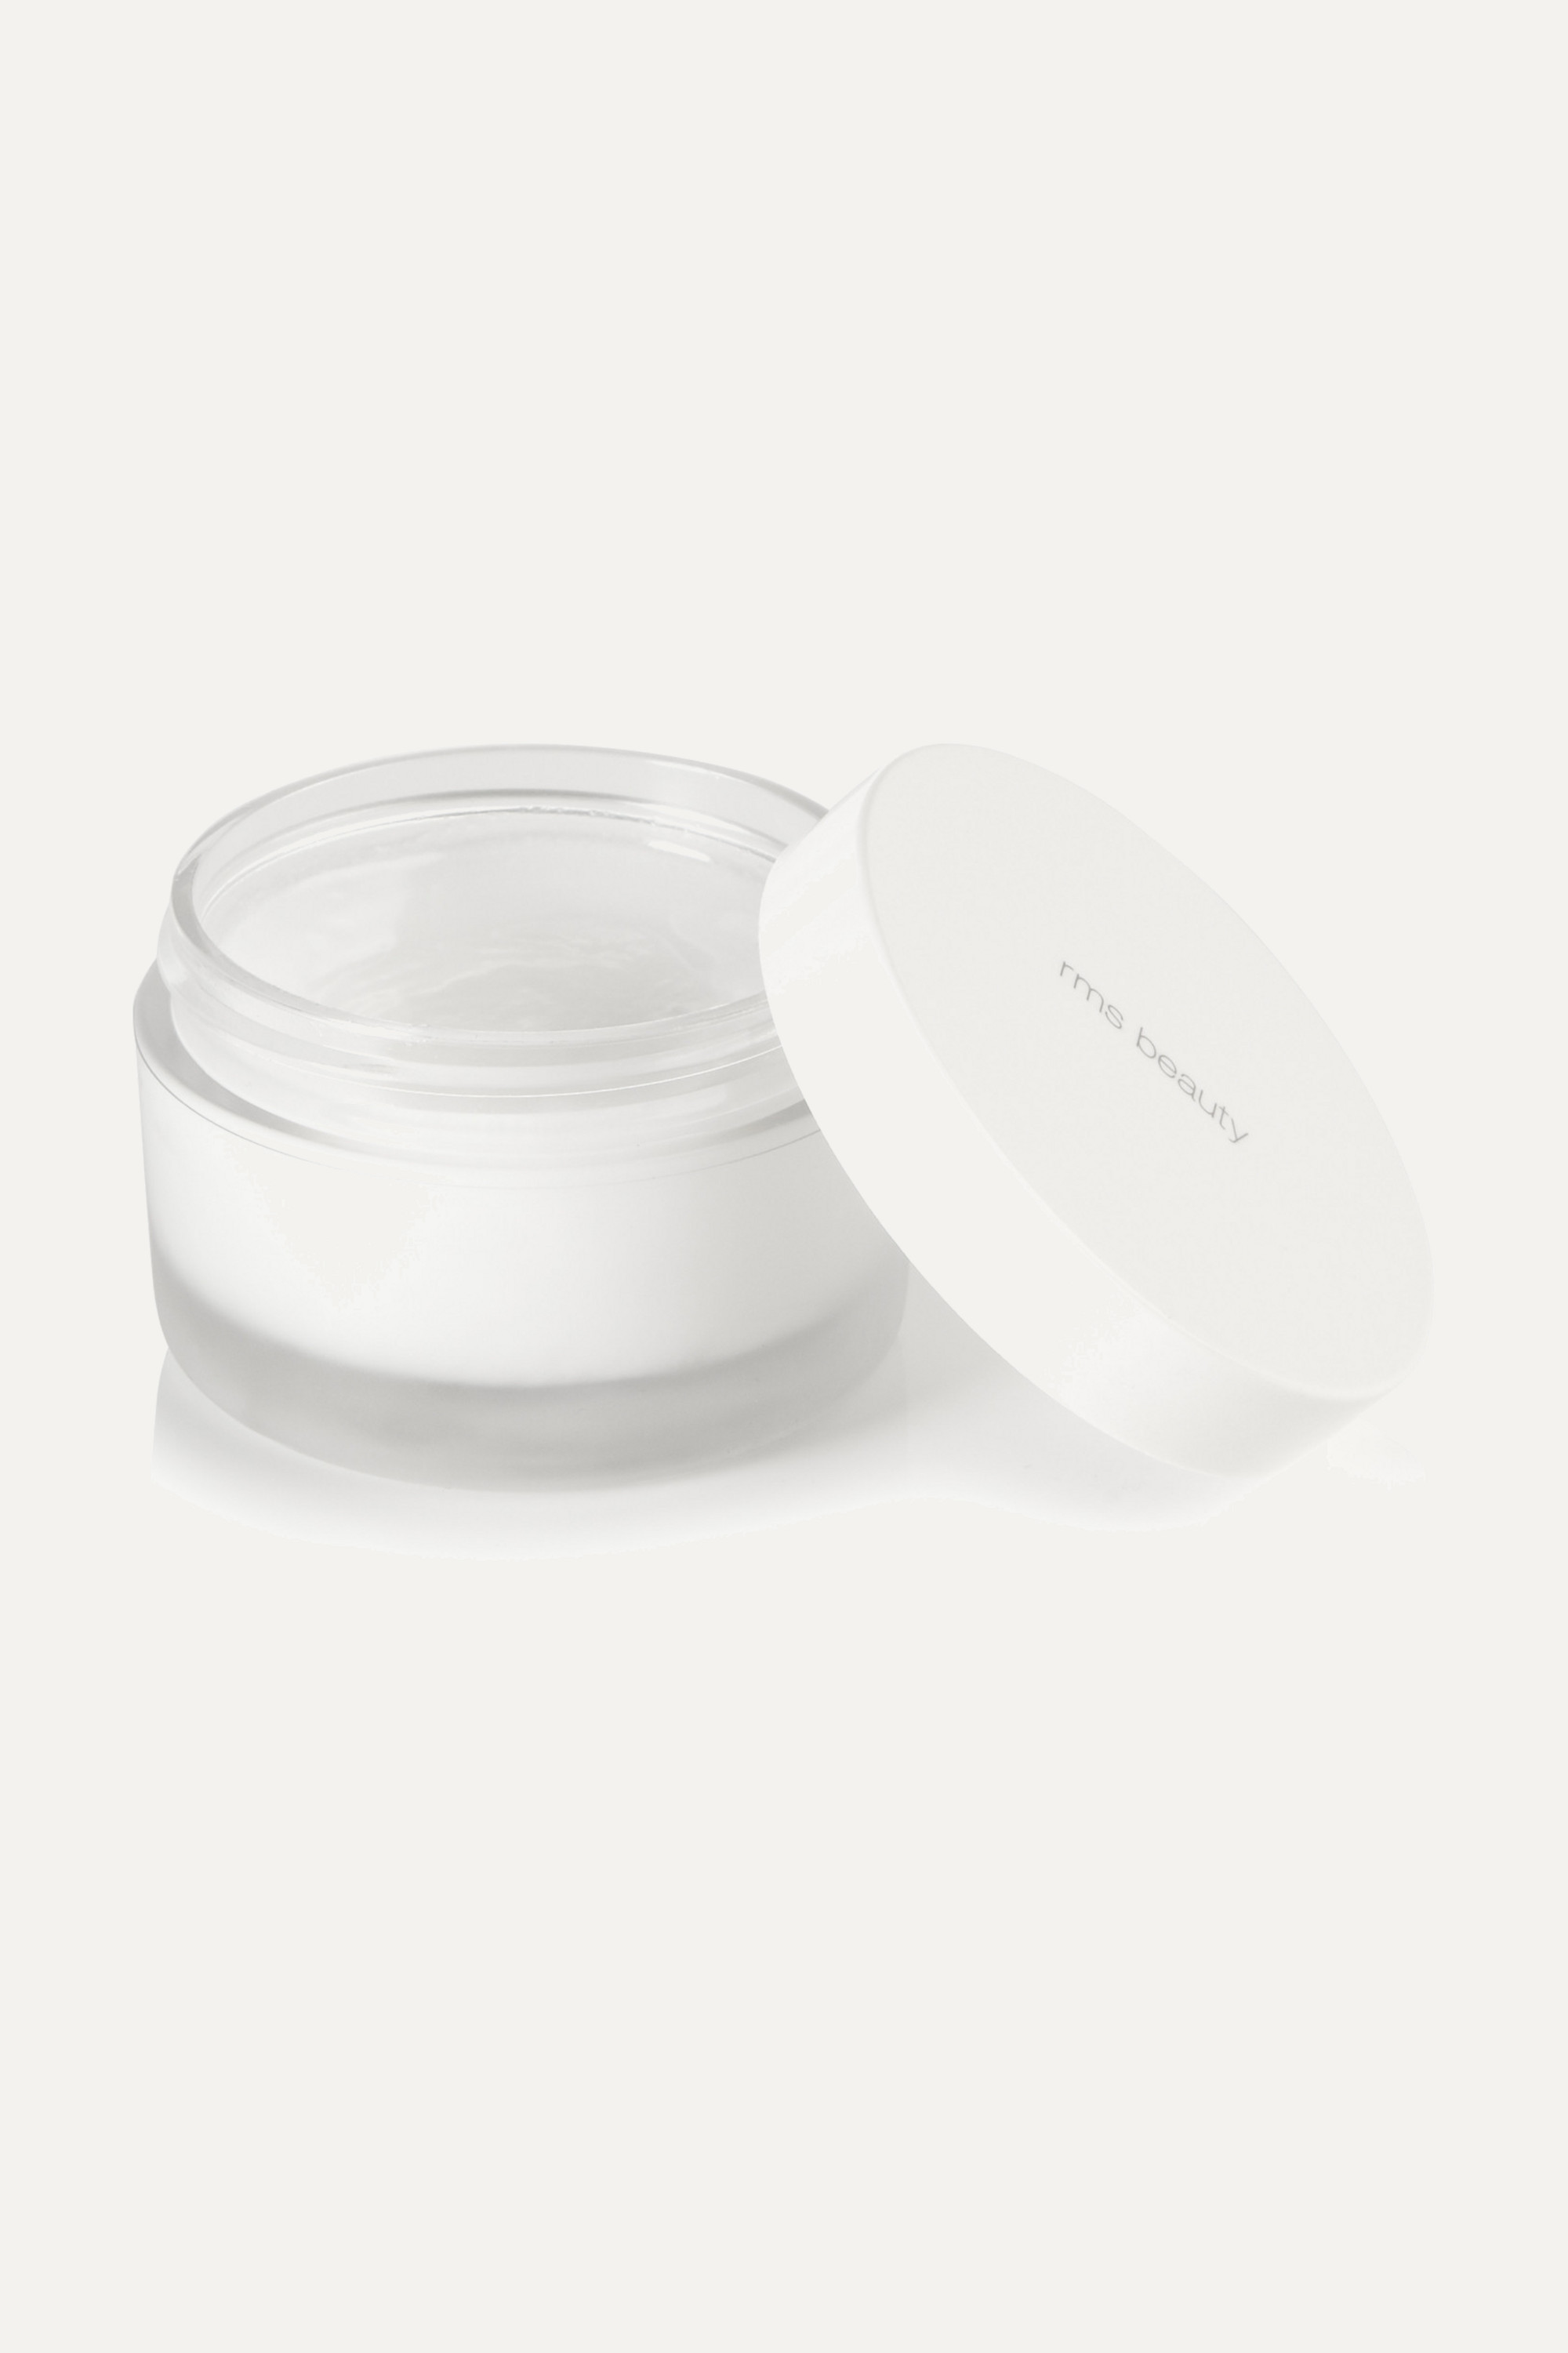 RMS Beauty Raw Coconut Cream, 70g